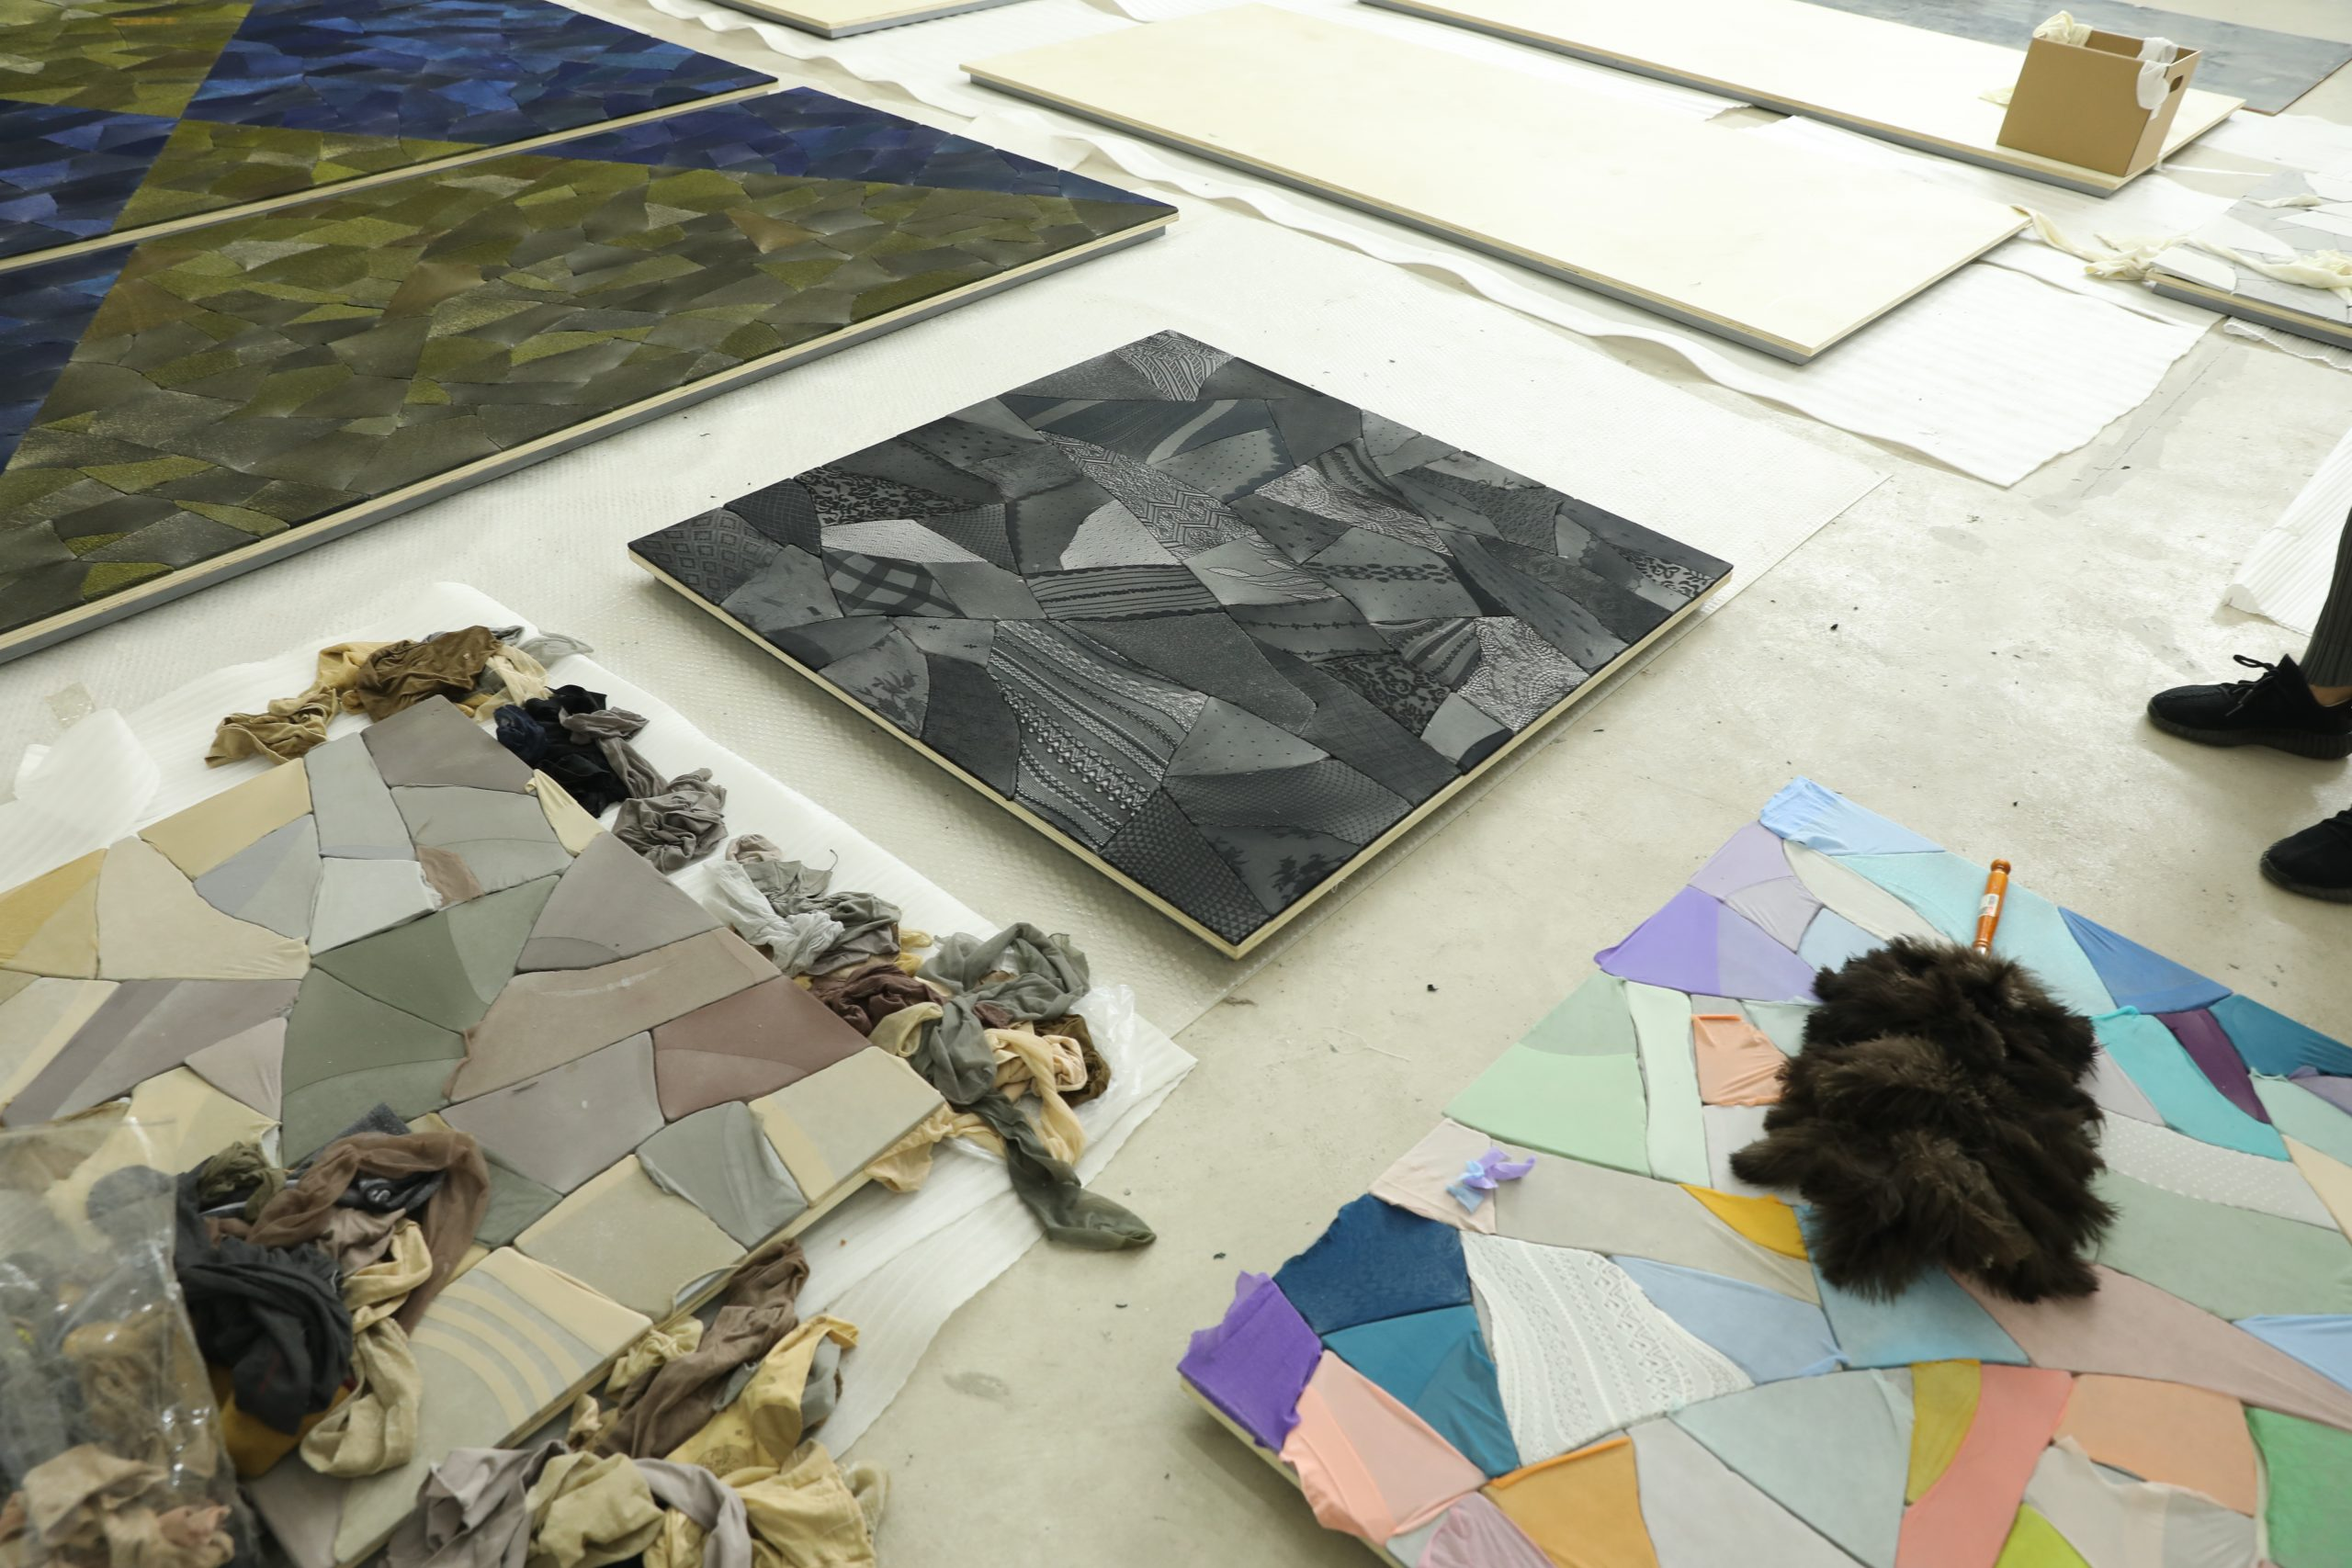 Assorted nylon stockings and works in progress in Ma Qiusha's studio. Photo commissioned by the Smart Museum of Art during an artist interview. Photo by Yaya Rotem.